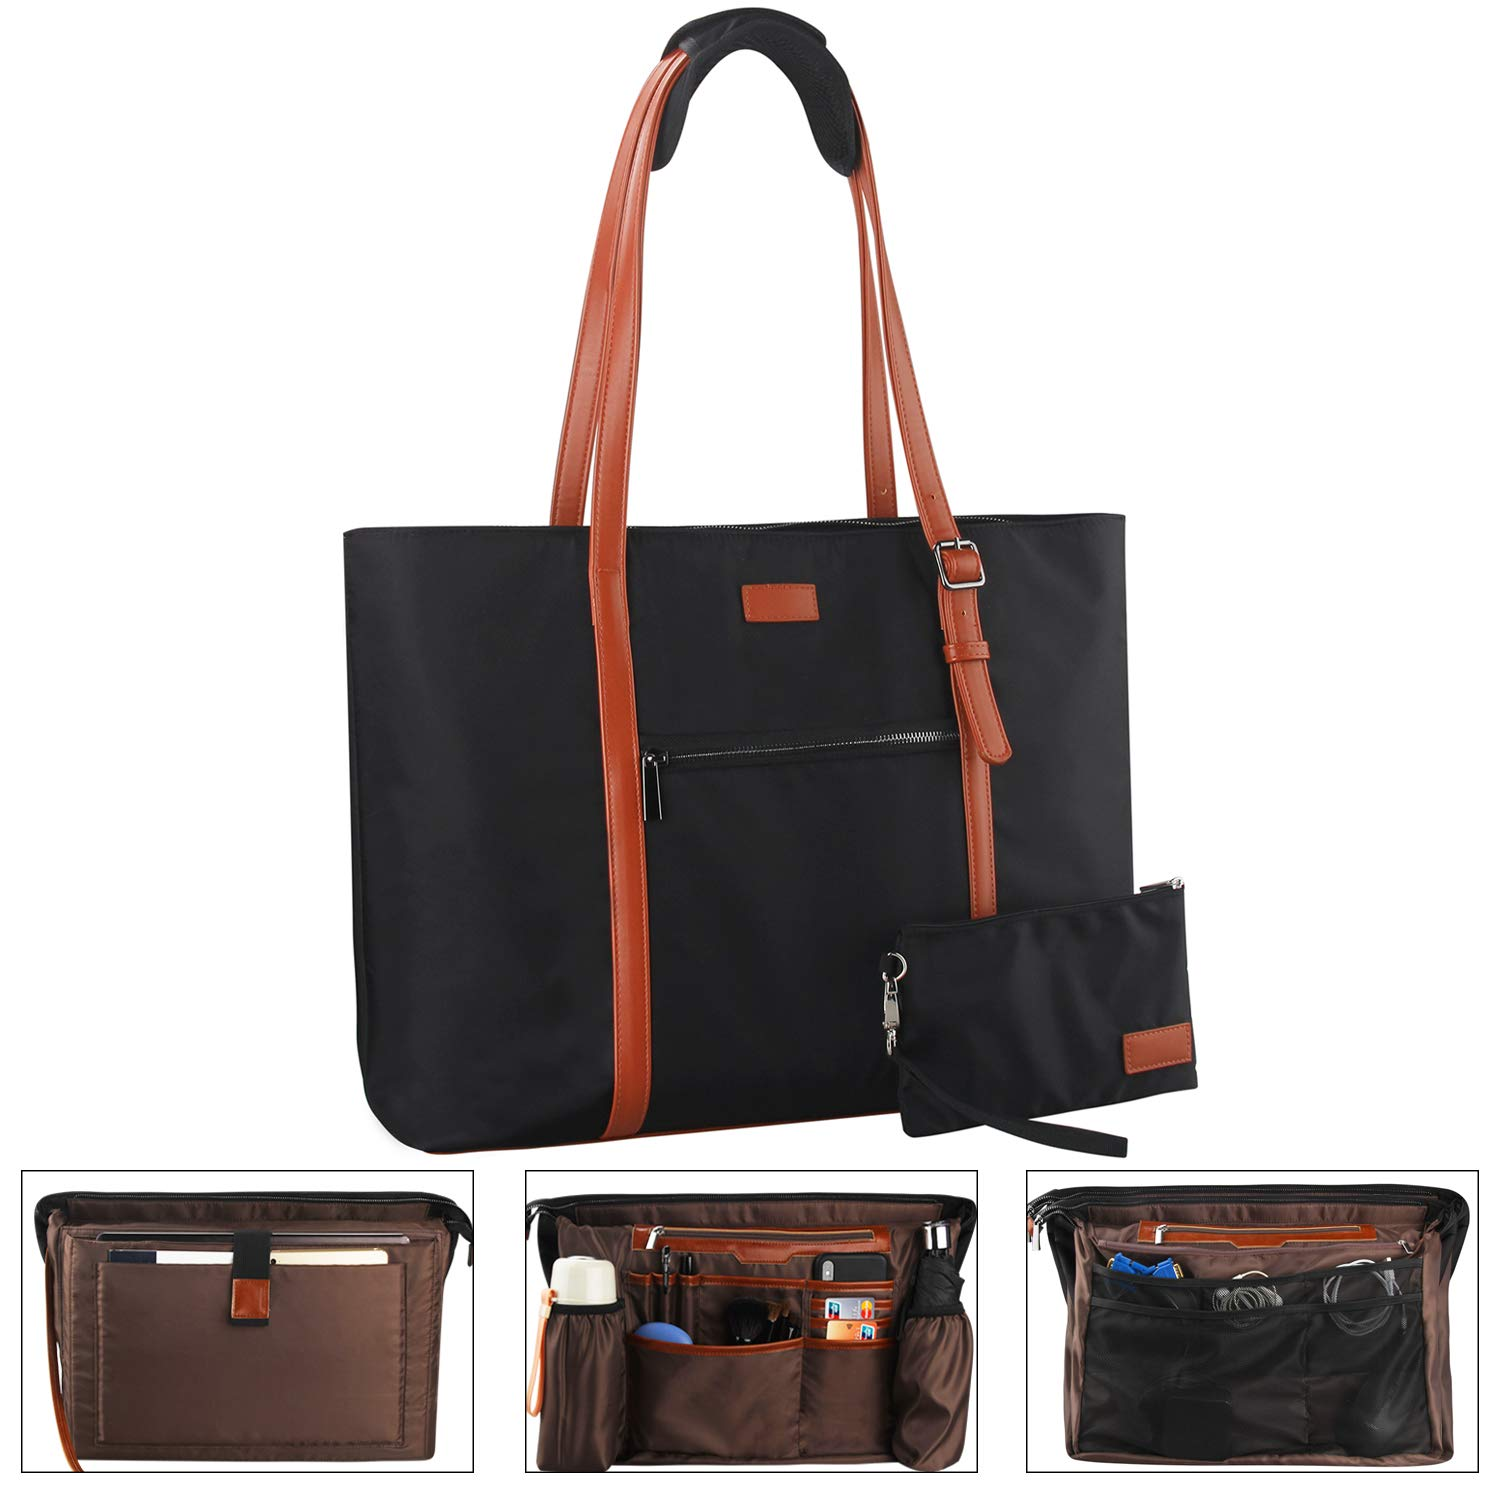 Laptop Tote Bag by Relavel